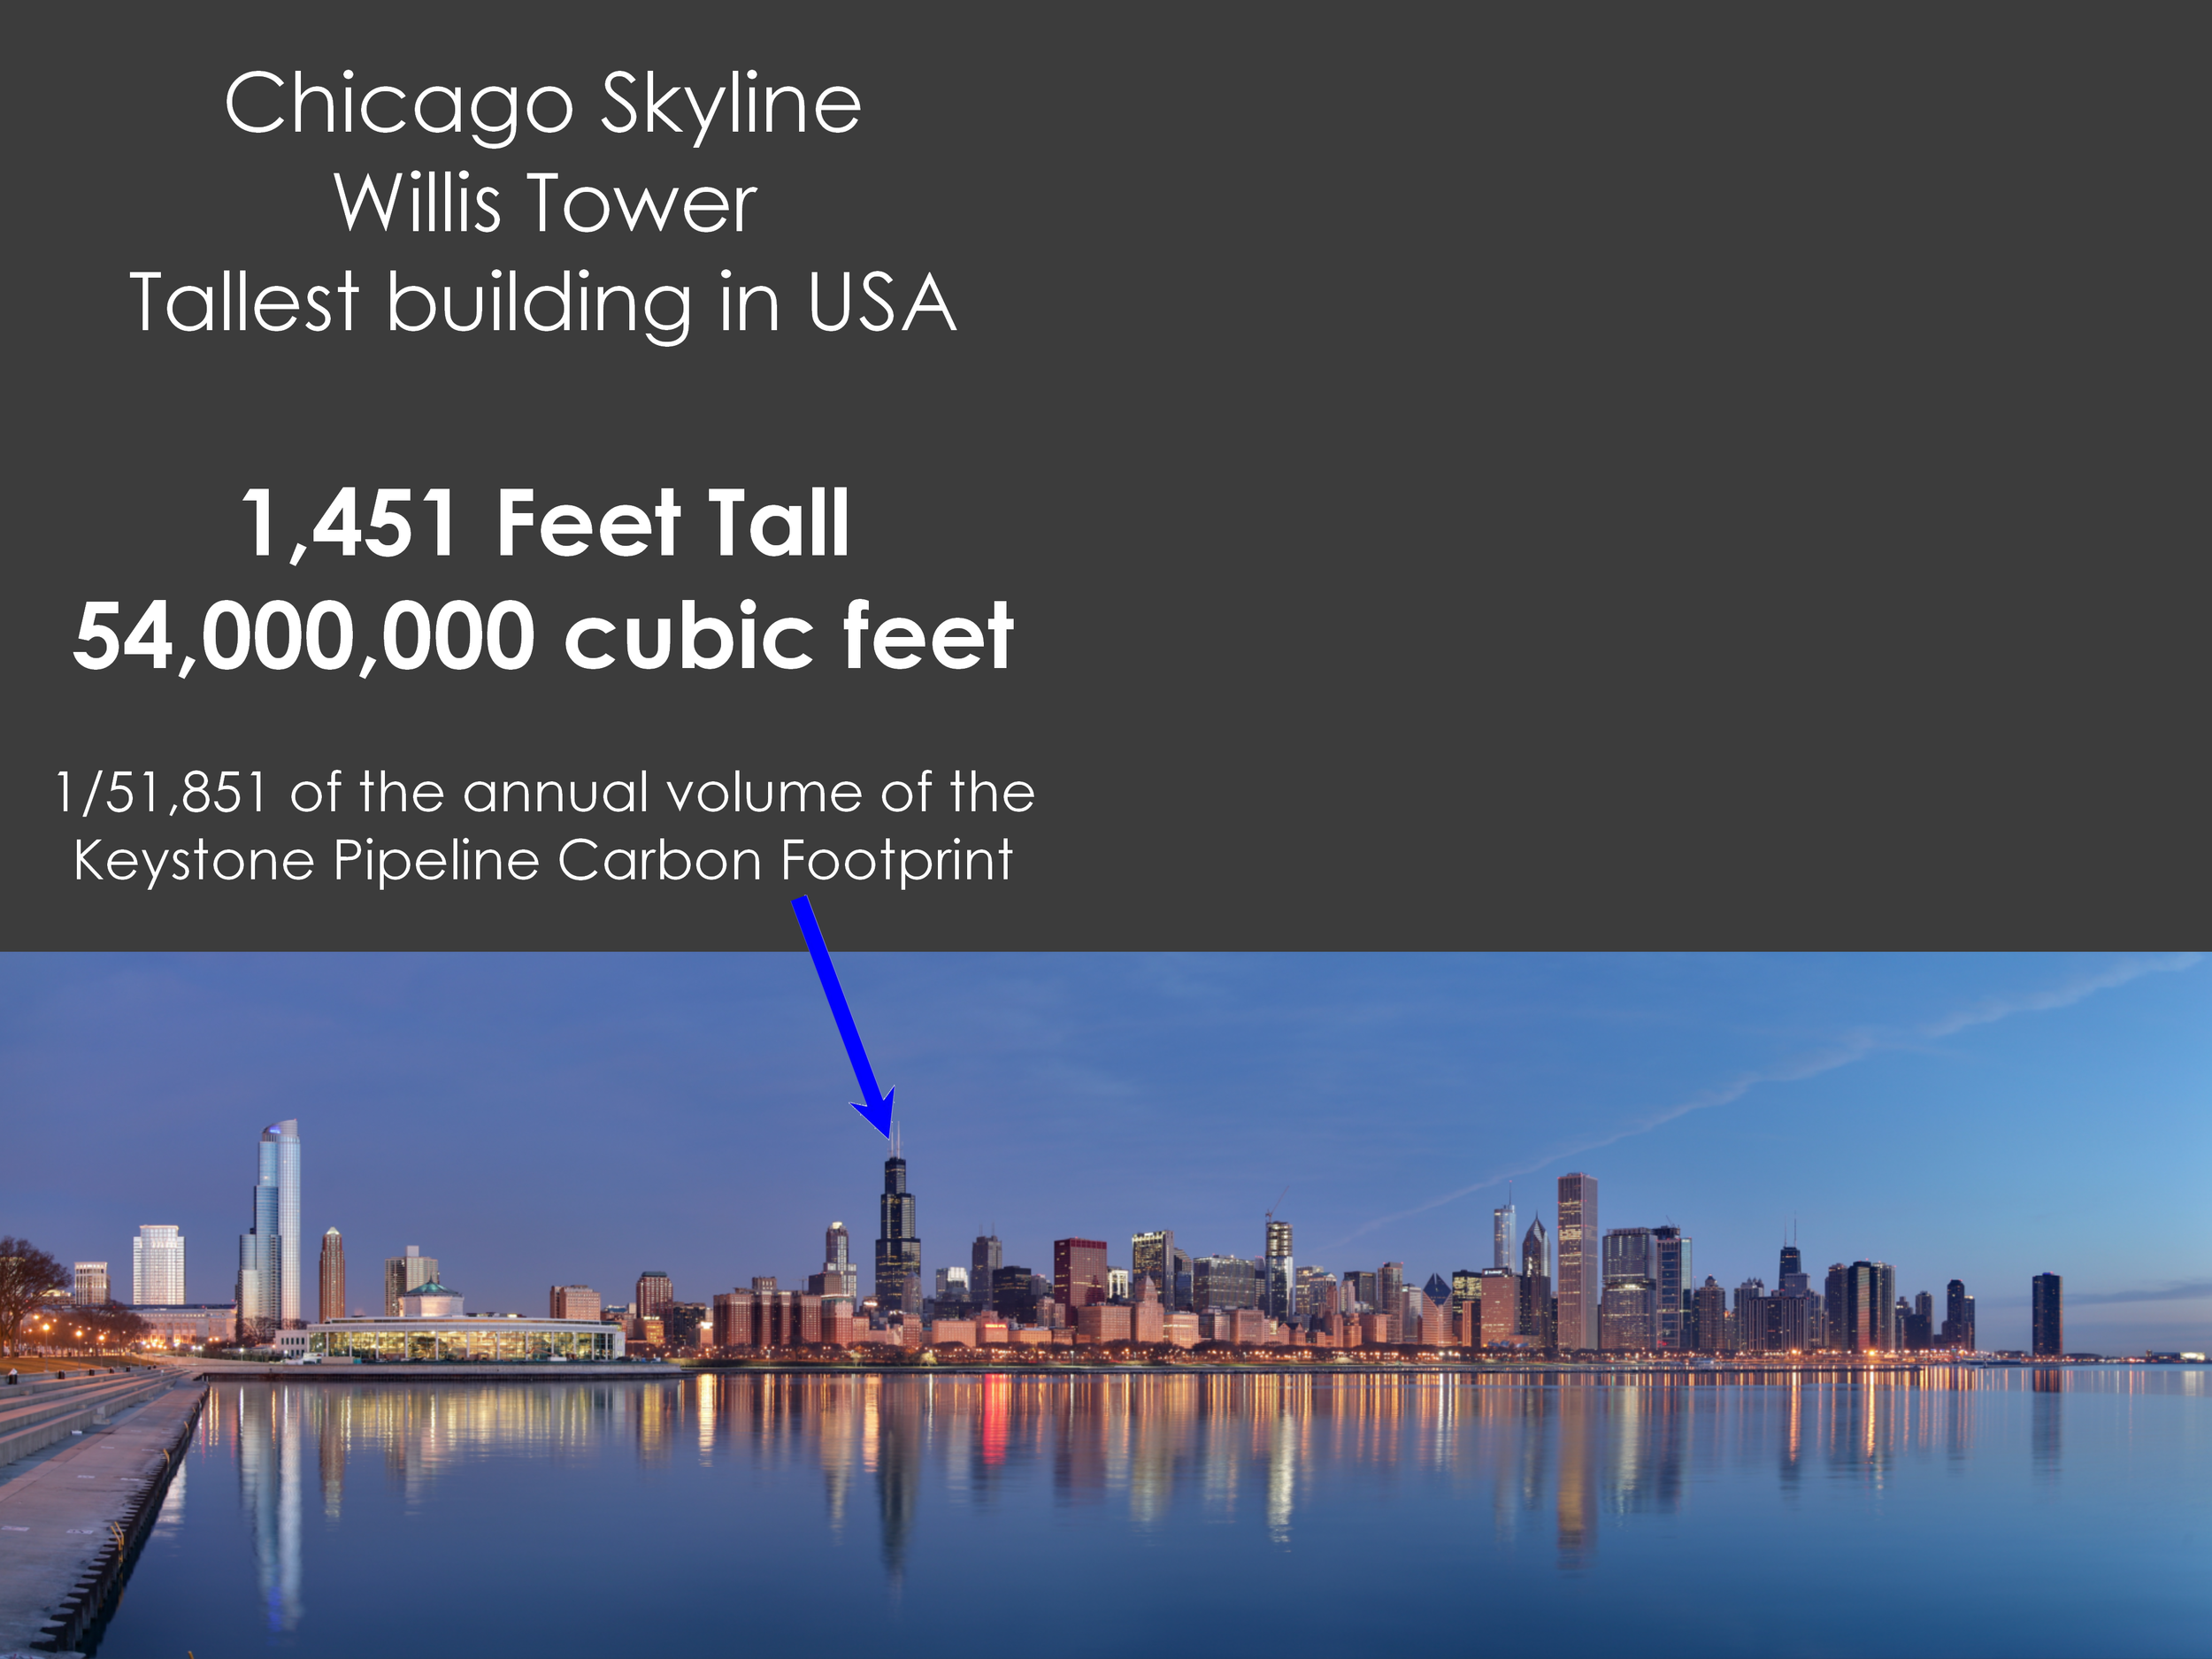 willis tower info.png